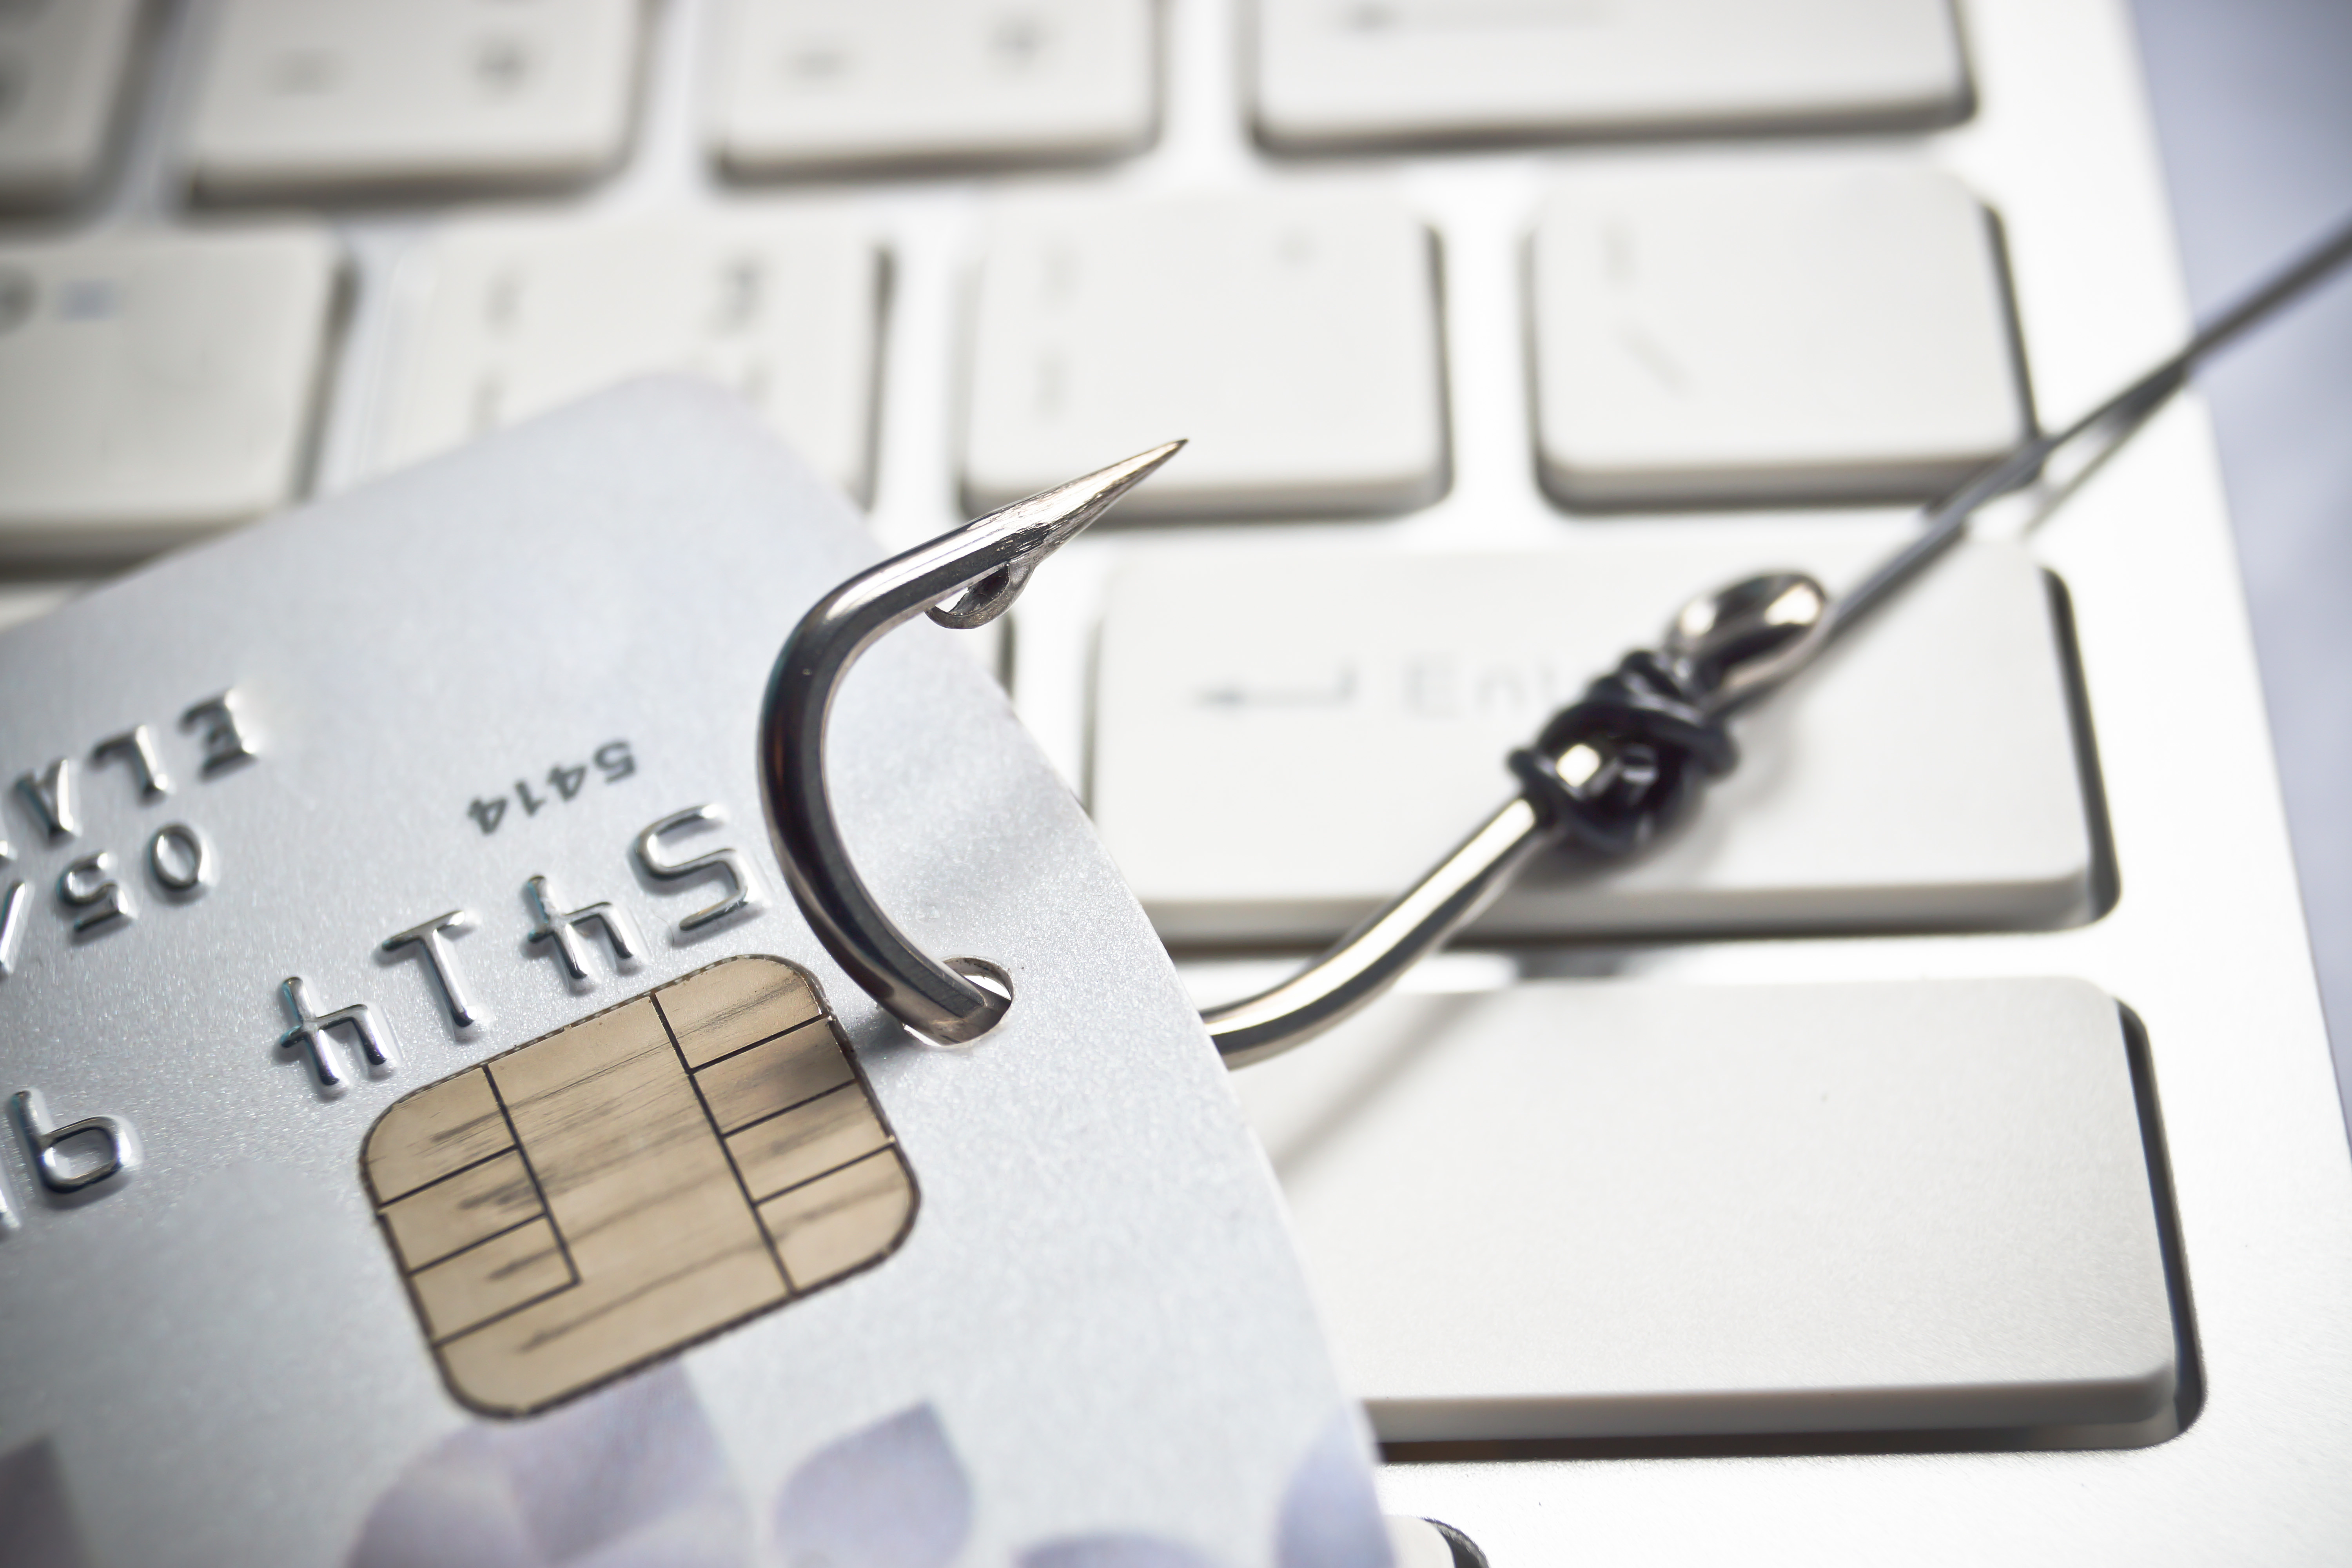 Phishing Scams and Cloud Computing